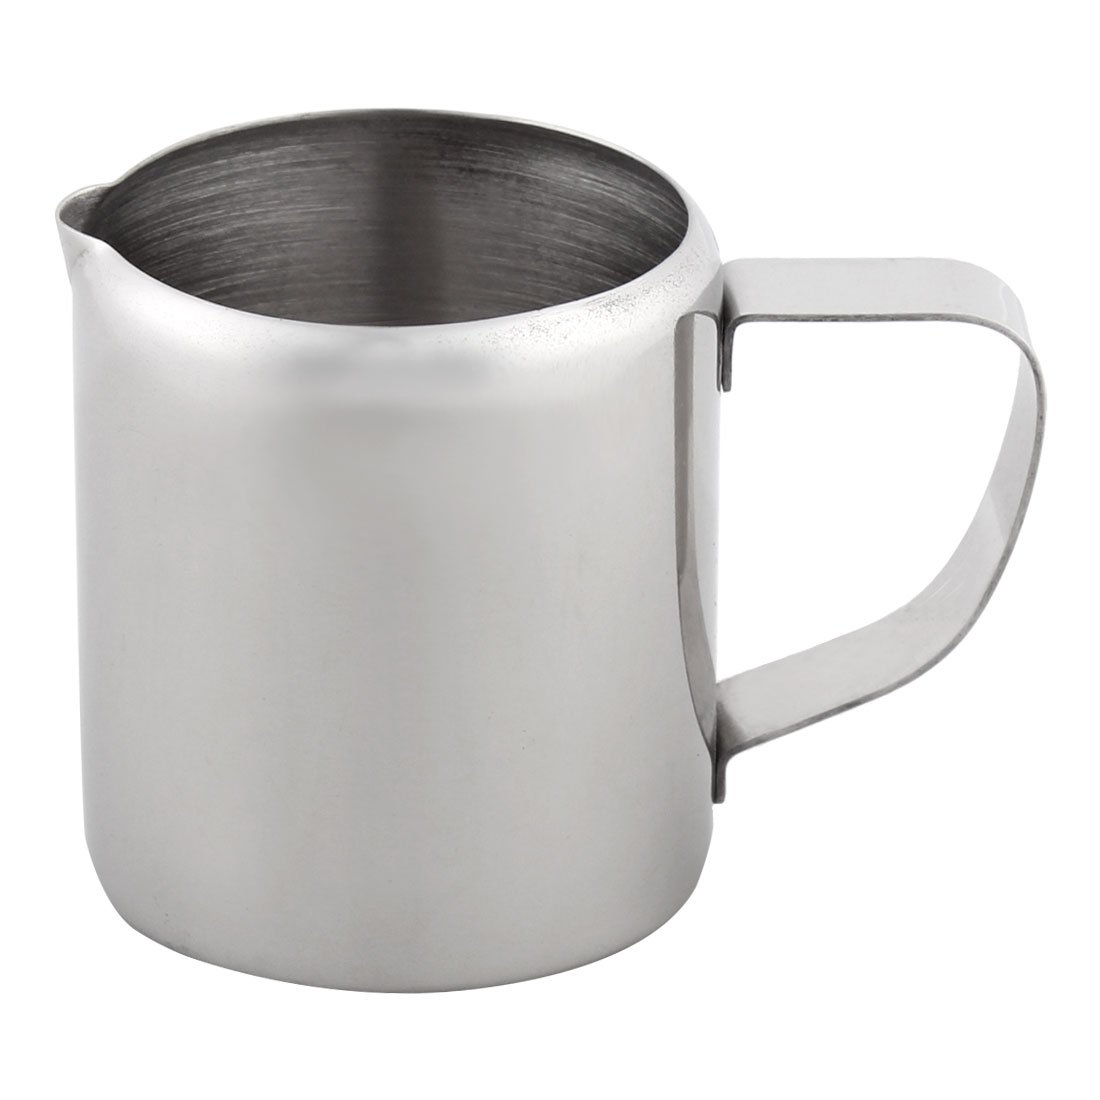 uxcell Stainless Max 52% OFF Steel Kitchen Laboratory Me Regular discount Handle Water Liquid